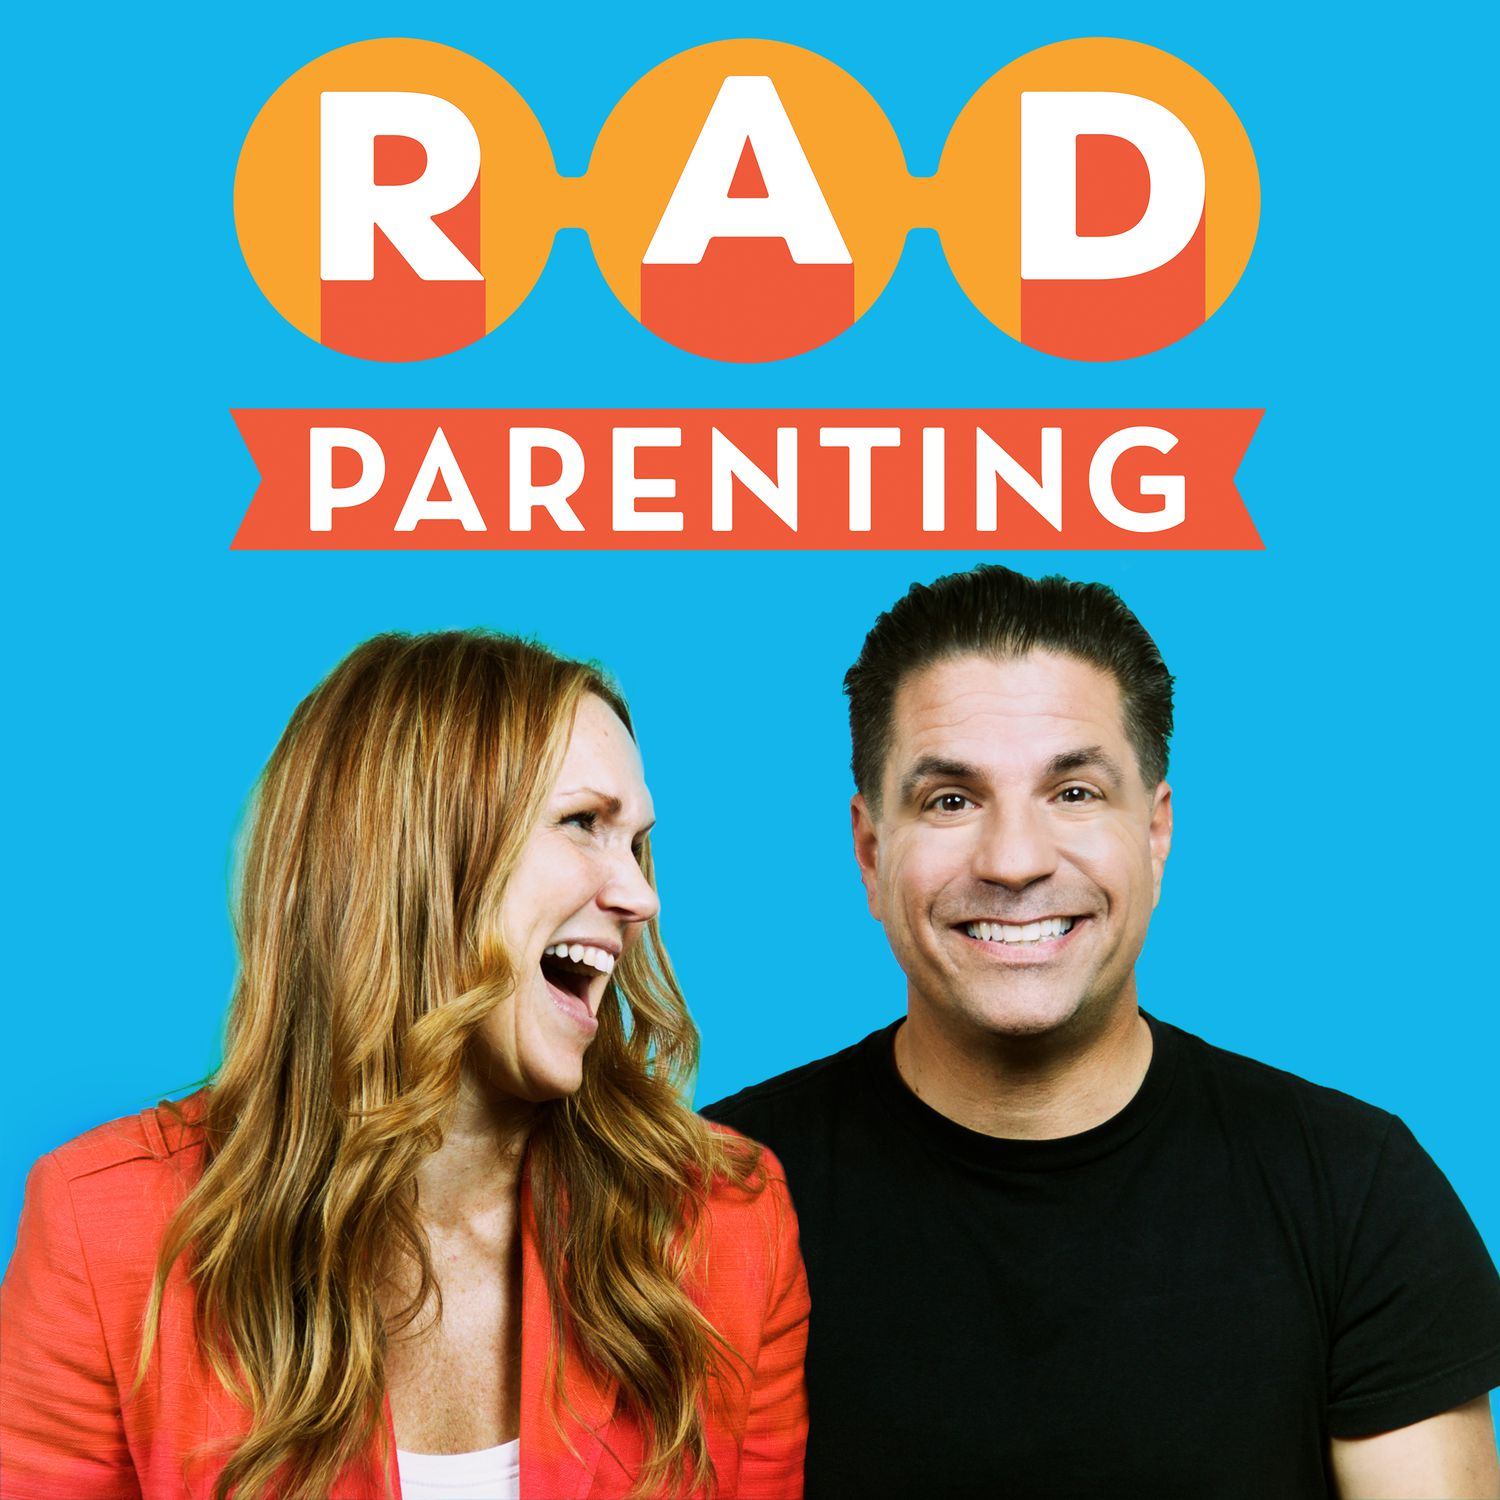 Rad Parenting | She's an expert. He's not.